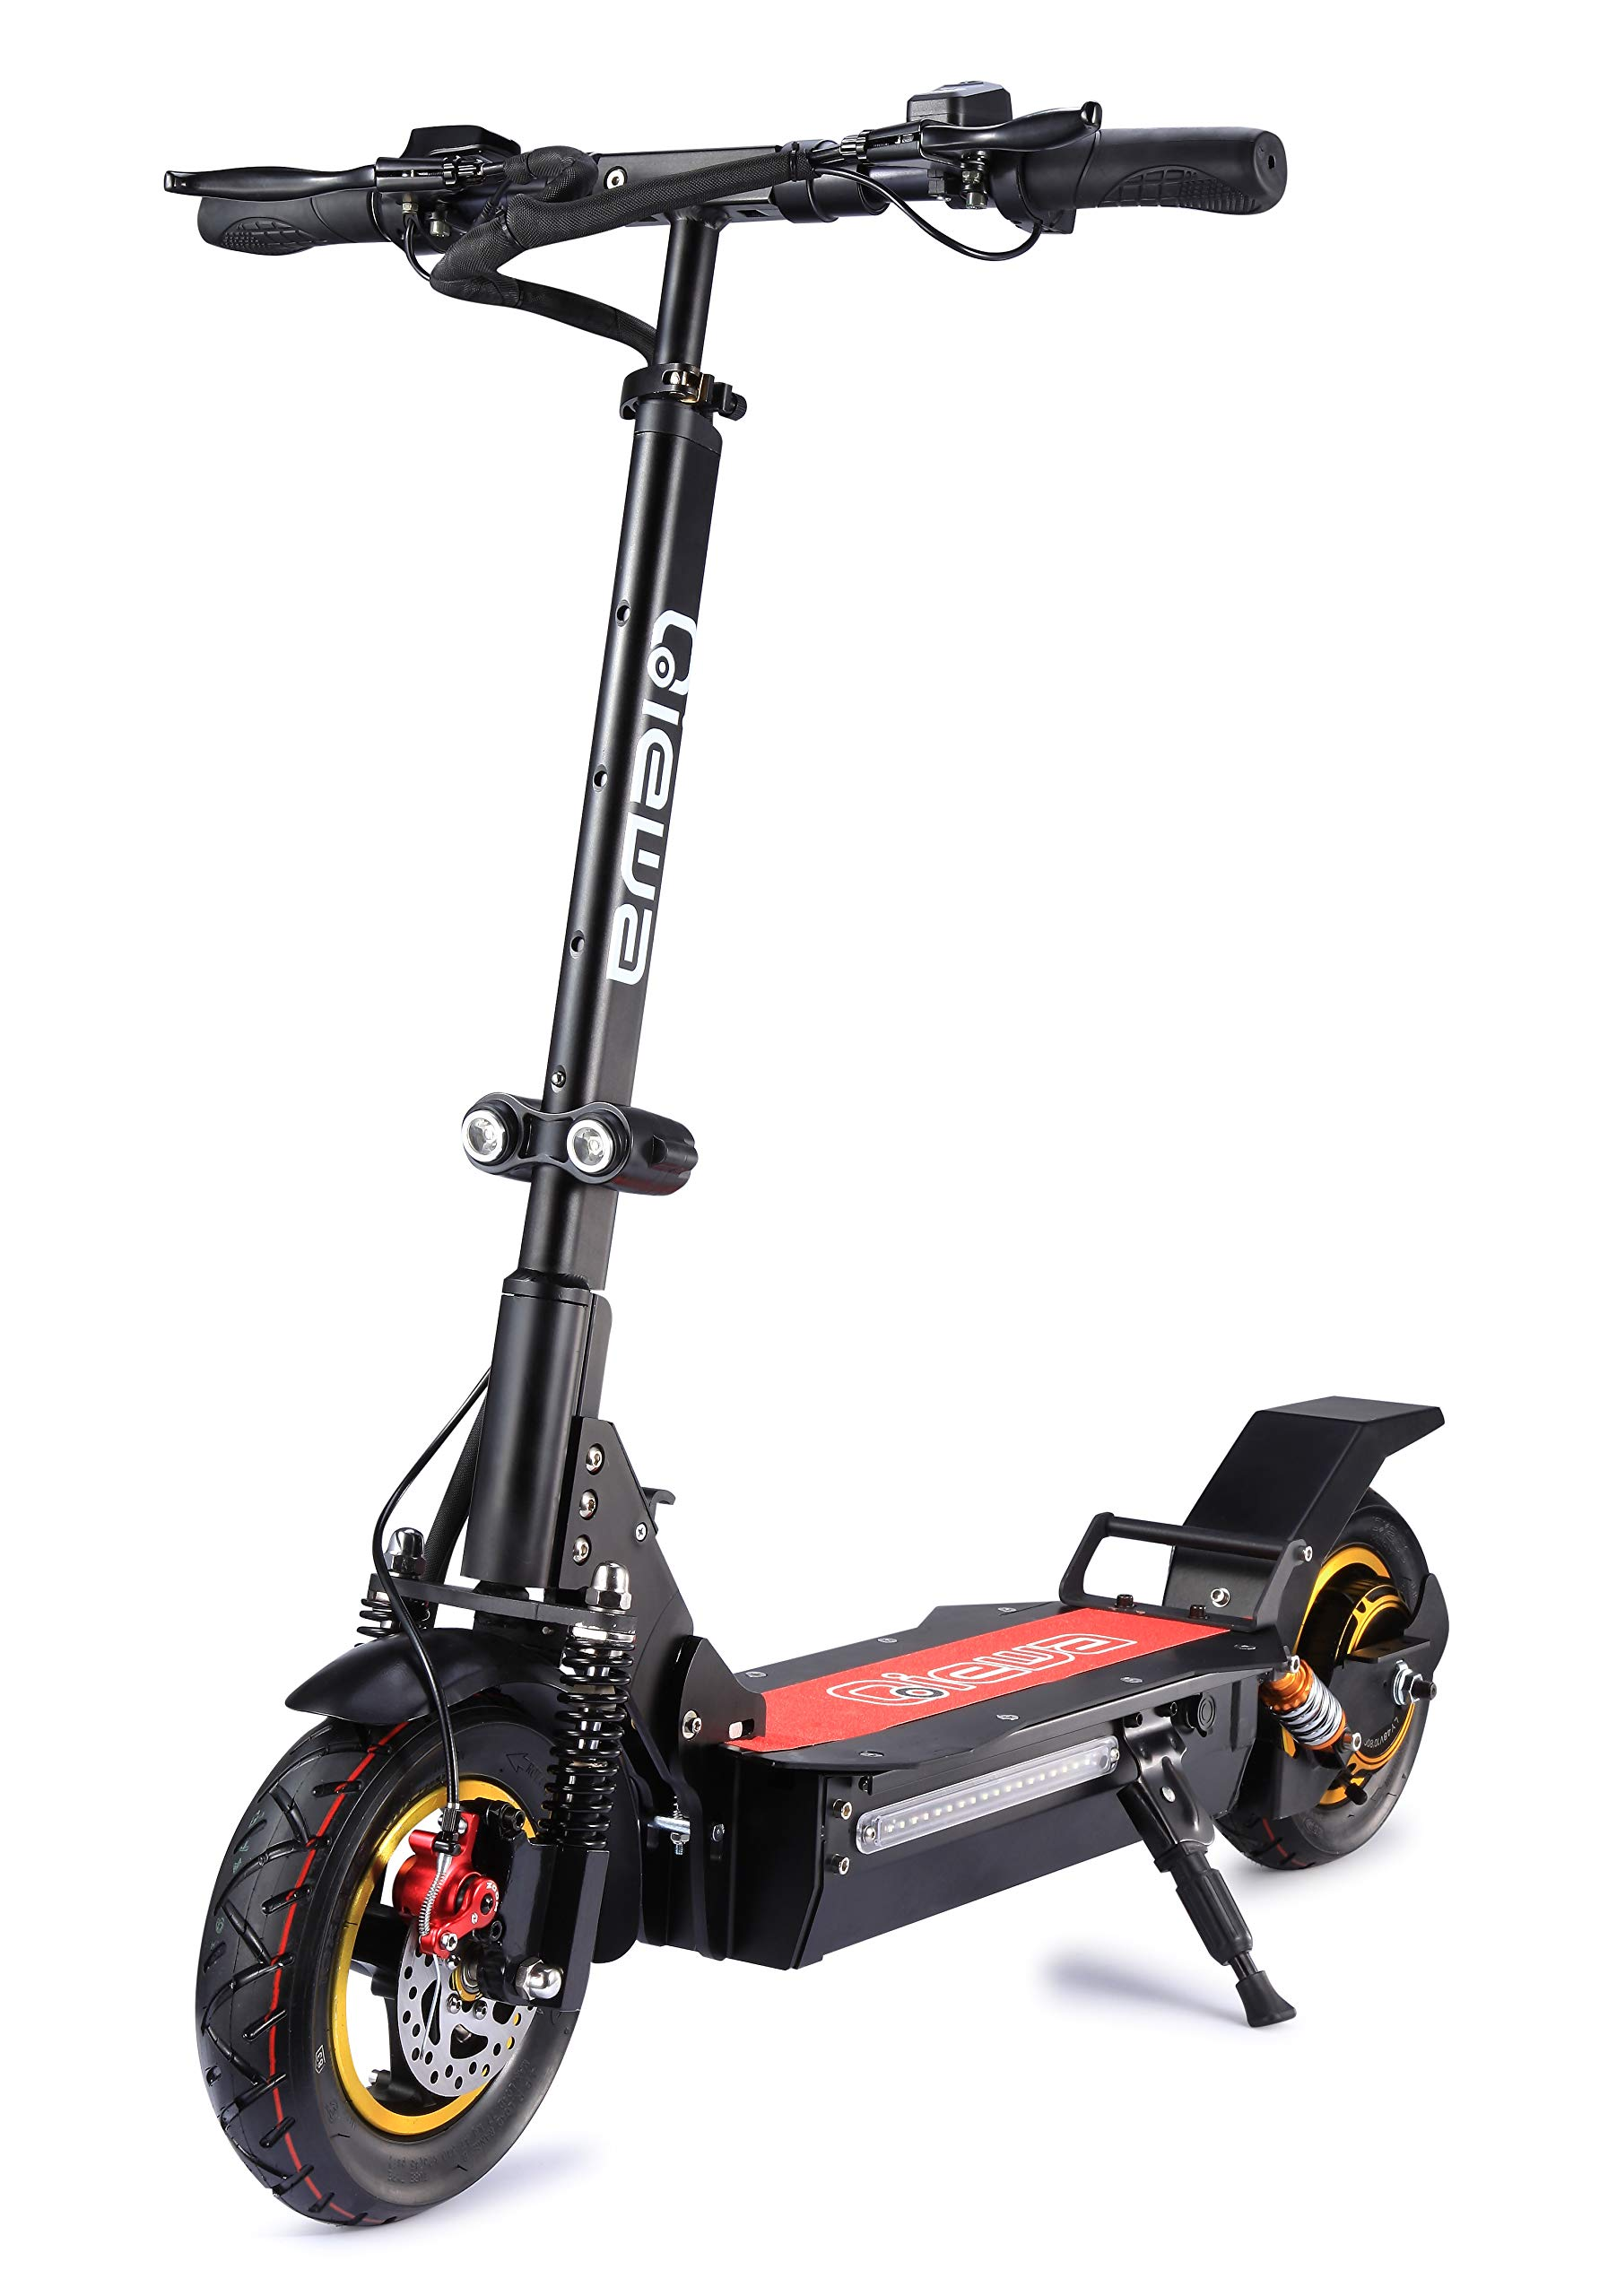 QIEWA Q1-Hummer Electric Scooter | Max Speed 37MPH | Max Drive Distance 68 Miles | 48Volts+26AH Battery | Remote Anti-Theft Design|800Watts Motor|Double Disc Brakes|Amazing Driving Distance